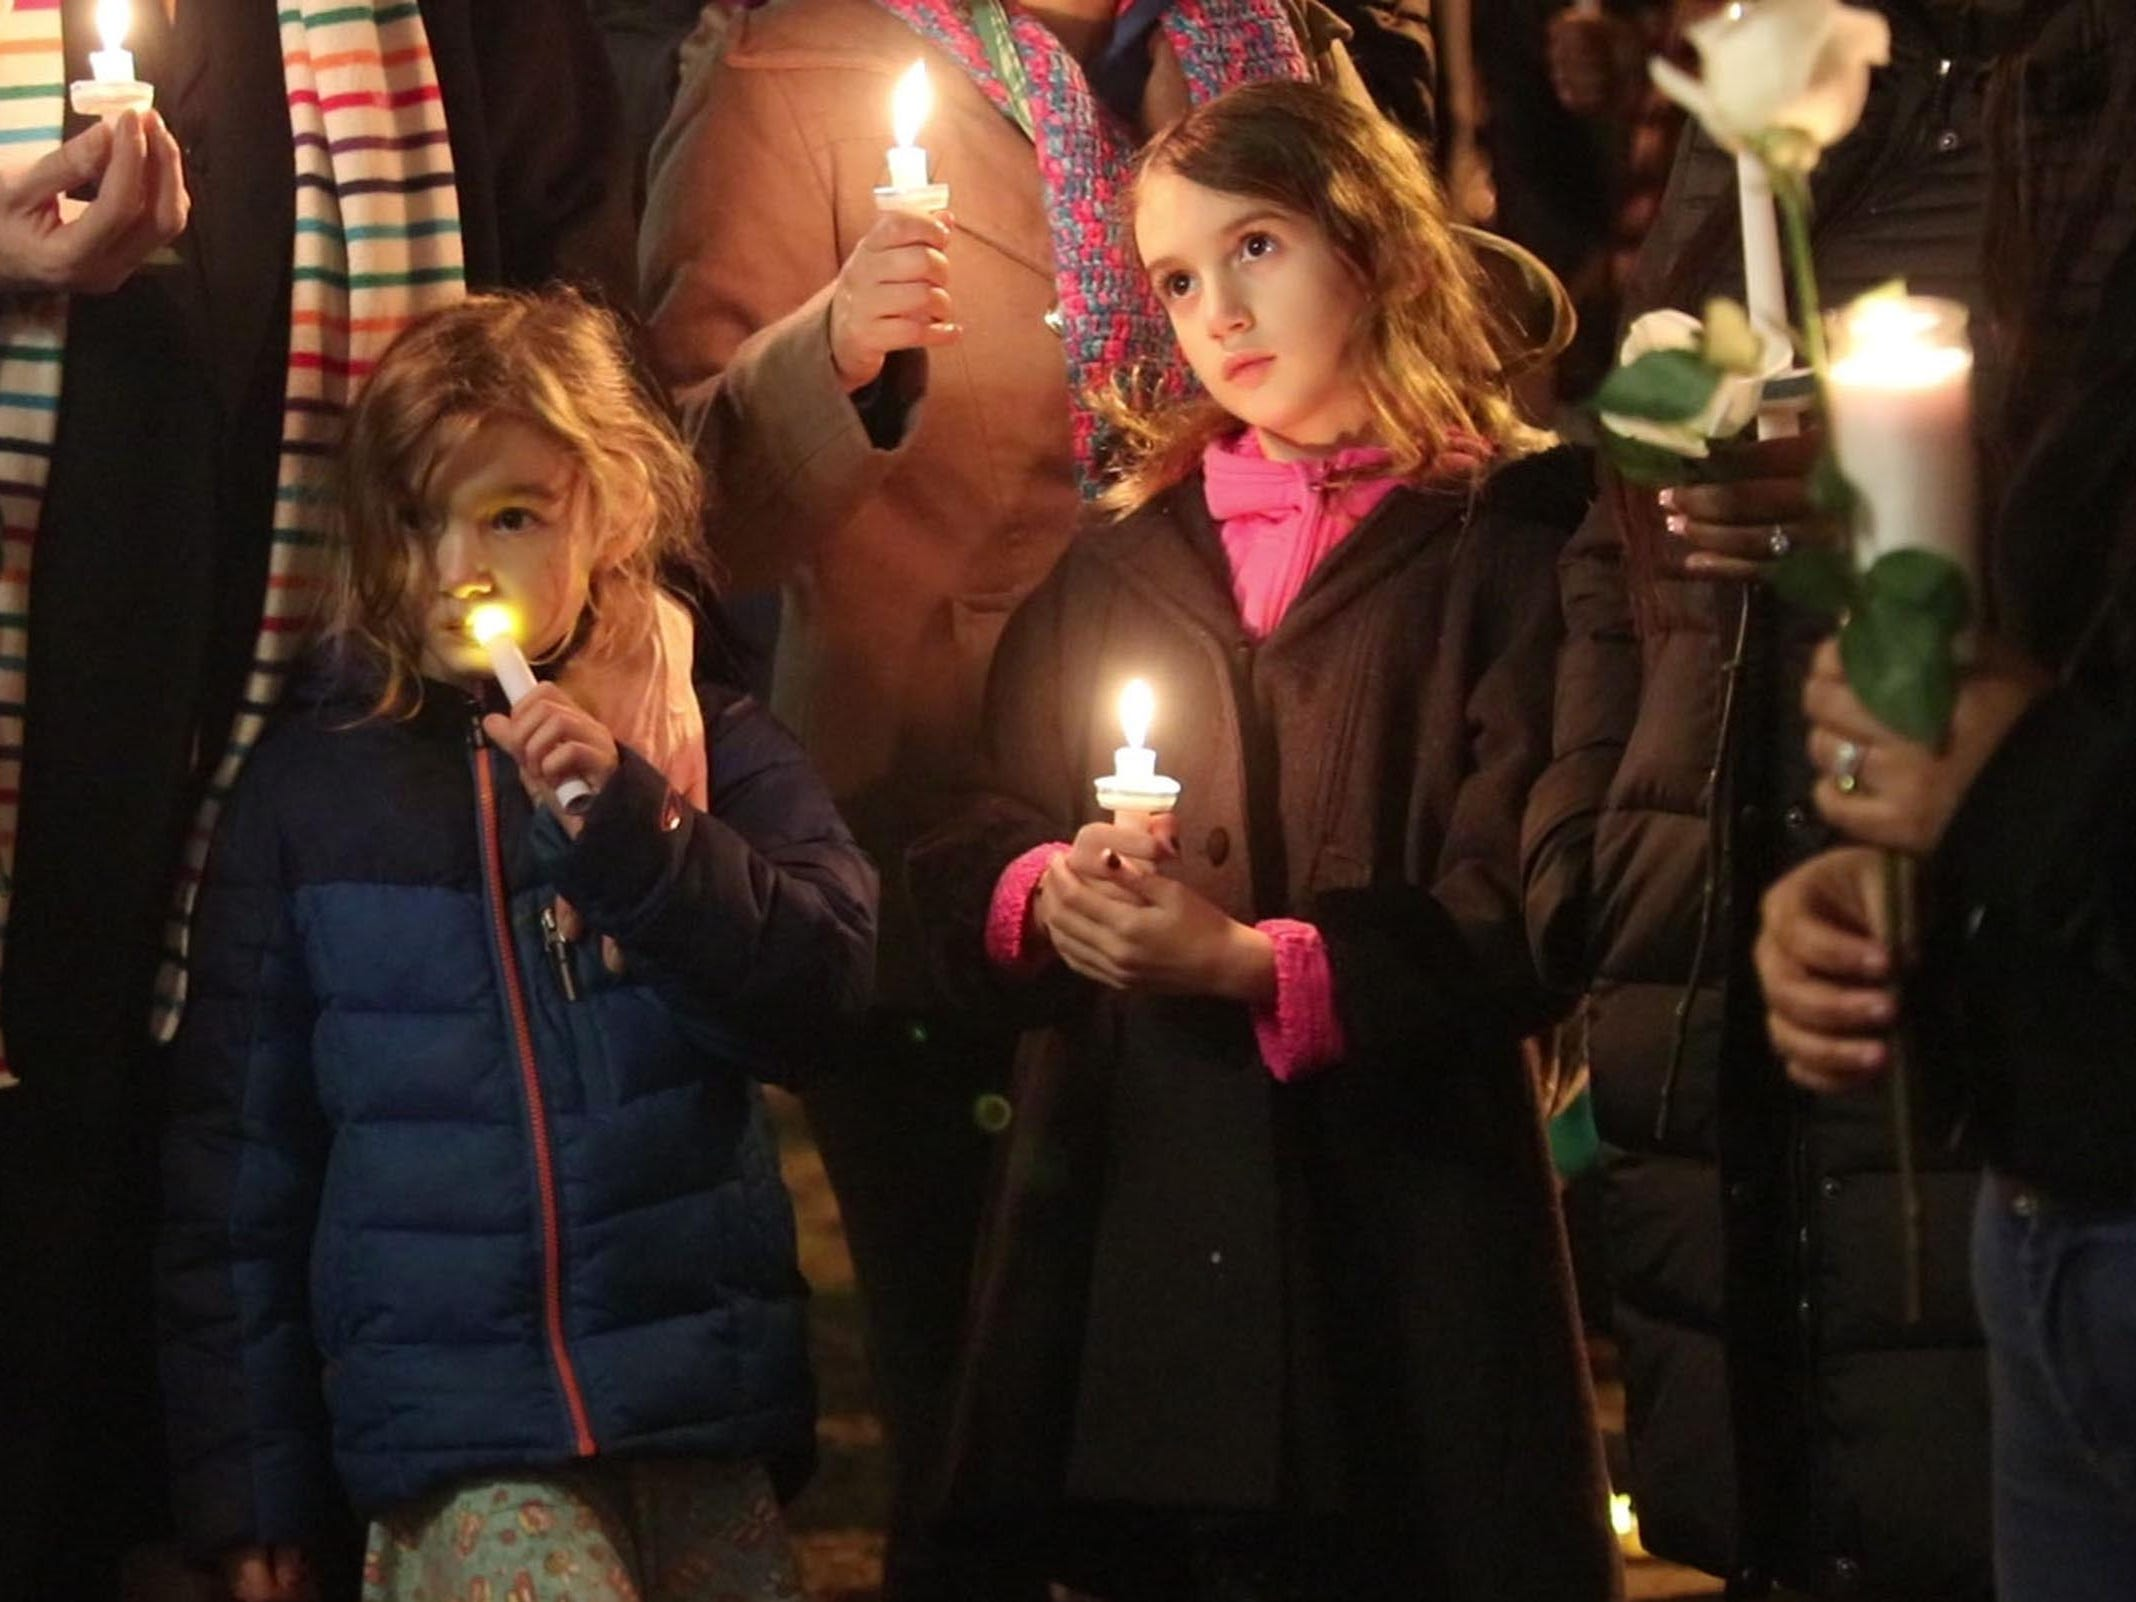 Mourners gather at the Boys & Girls Clubs of Monmouth County to hold a vigil for 10 year Yovanni Banos-Merino who was shot and killed this past week. Asbury Park, NJ on Saturday, February 24, 2018